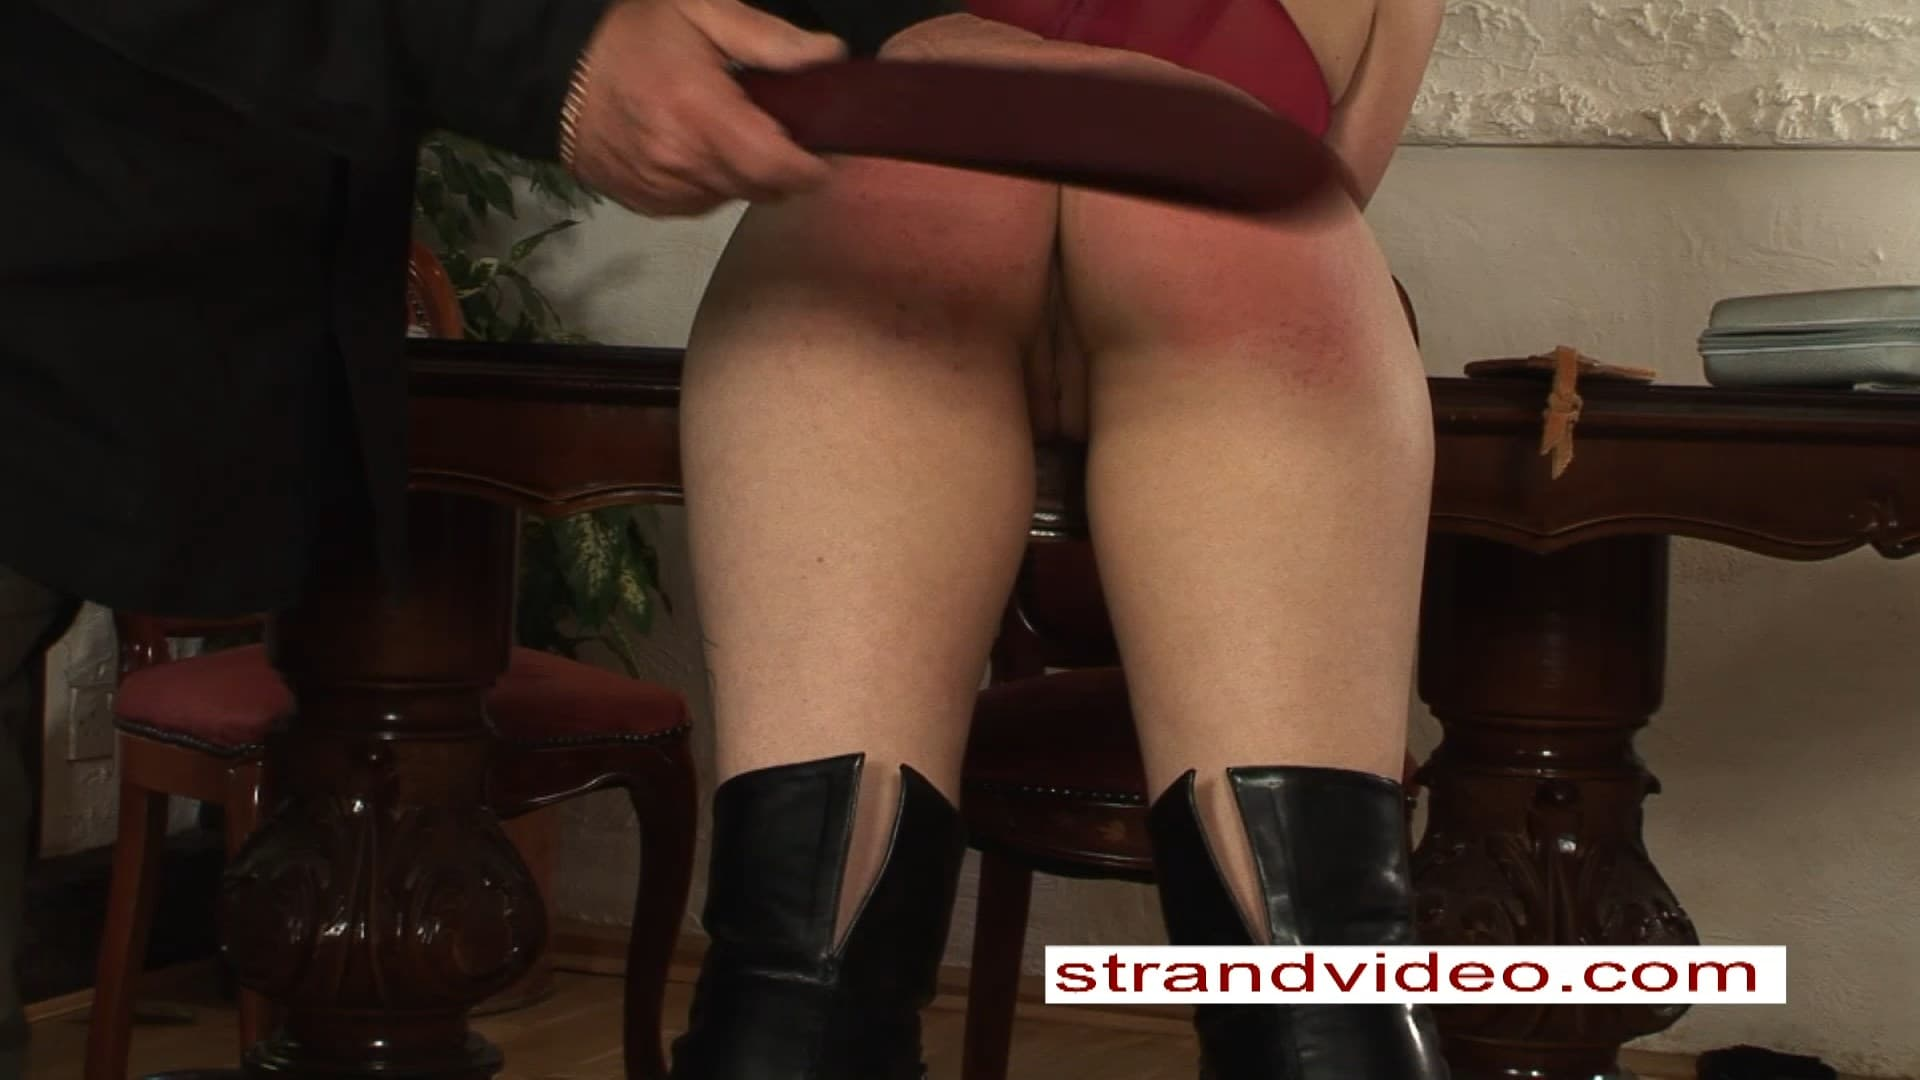 English Spankers – MP4/Full HD – Pixie, Sarah Stern – Pixie's Audition